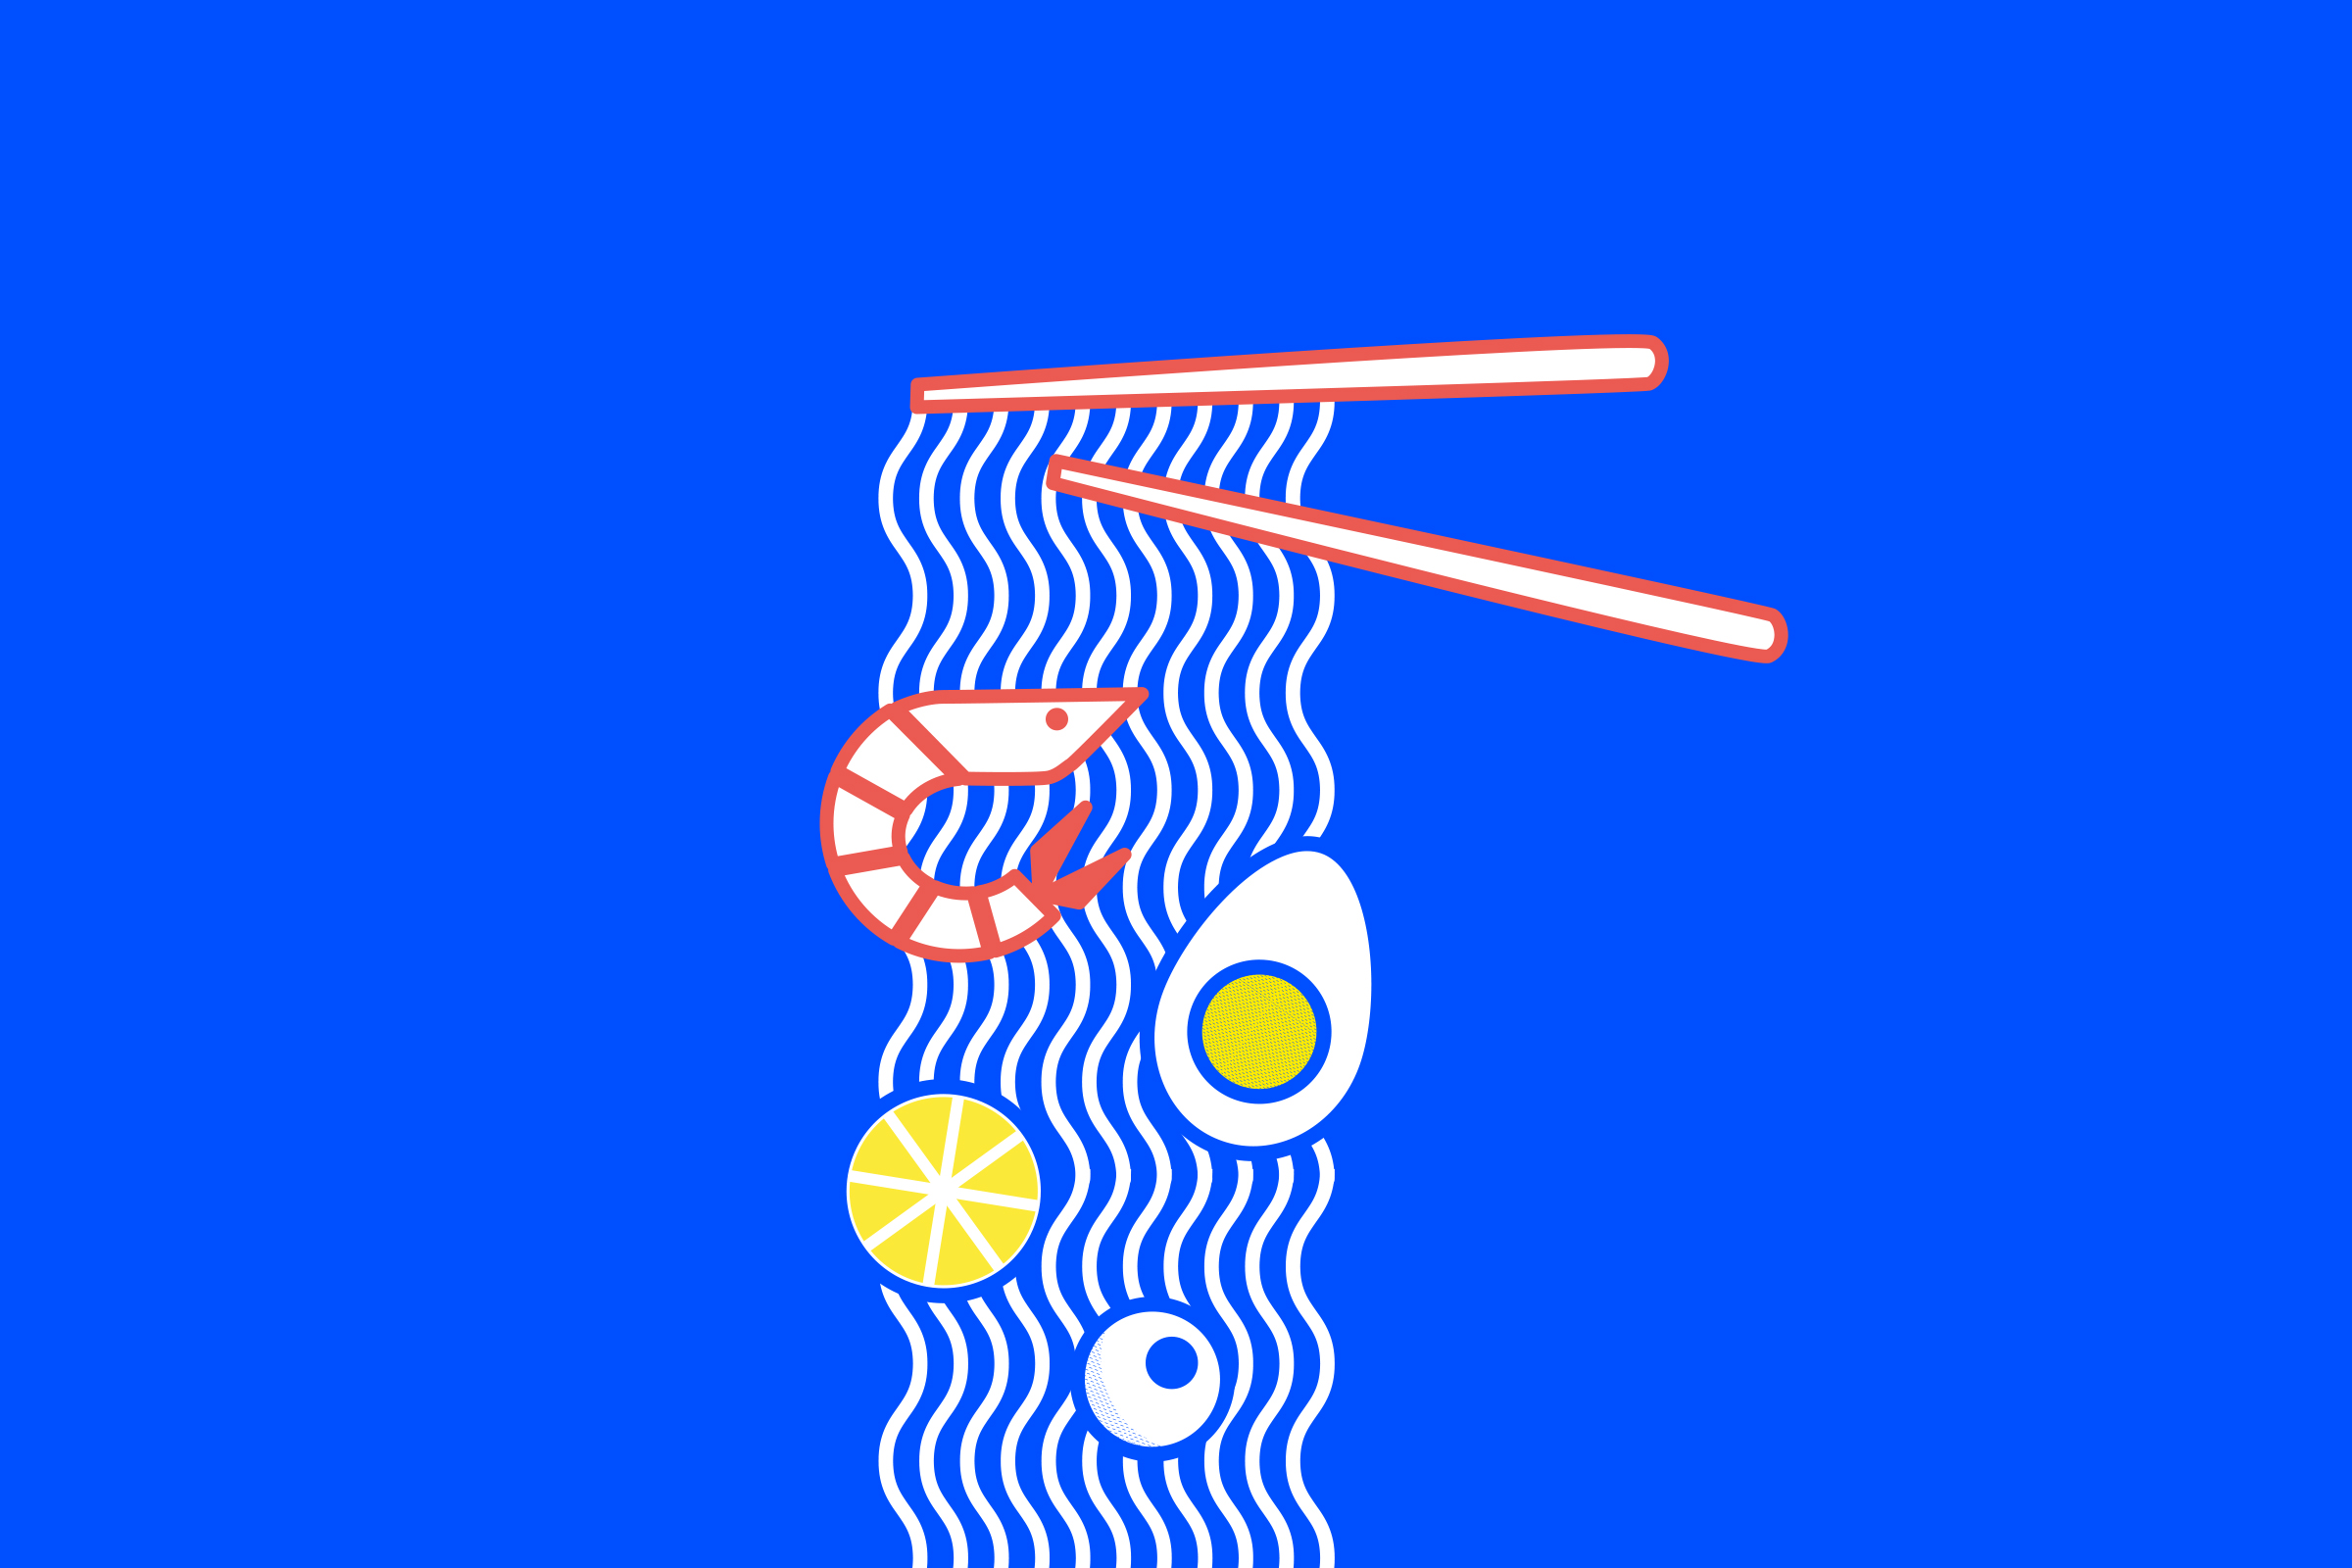 Illustration, Vektoren, Ramen, Japan, Farbe